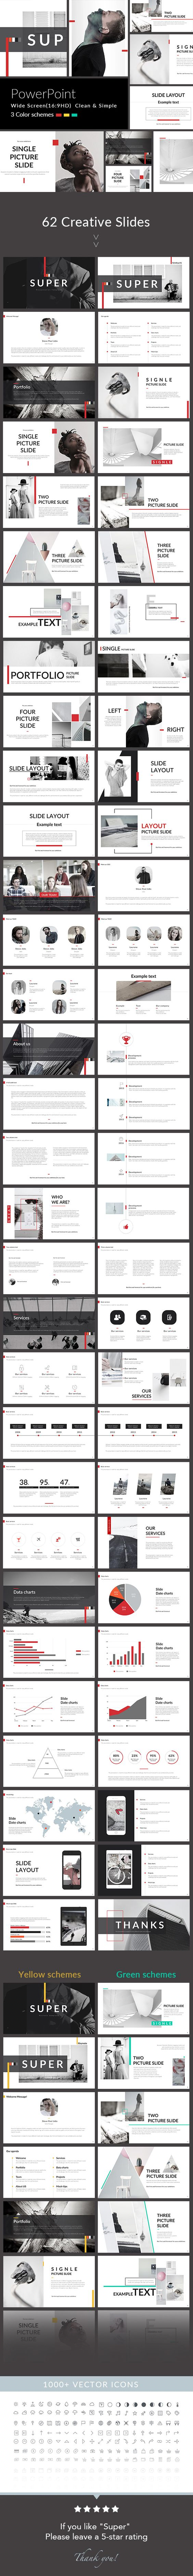 Super - PowerPoint Presentation Template. Download here: https://graphicriver.net/item/super-powerpoint-presentation-template/17264859?ref=ksioks